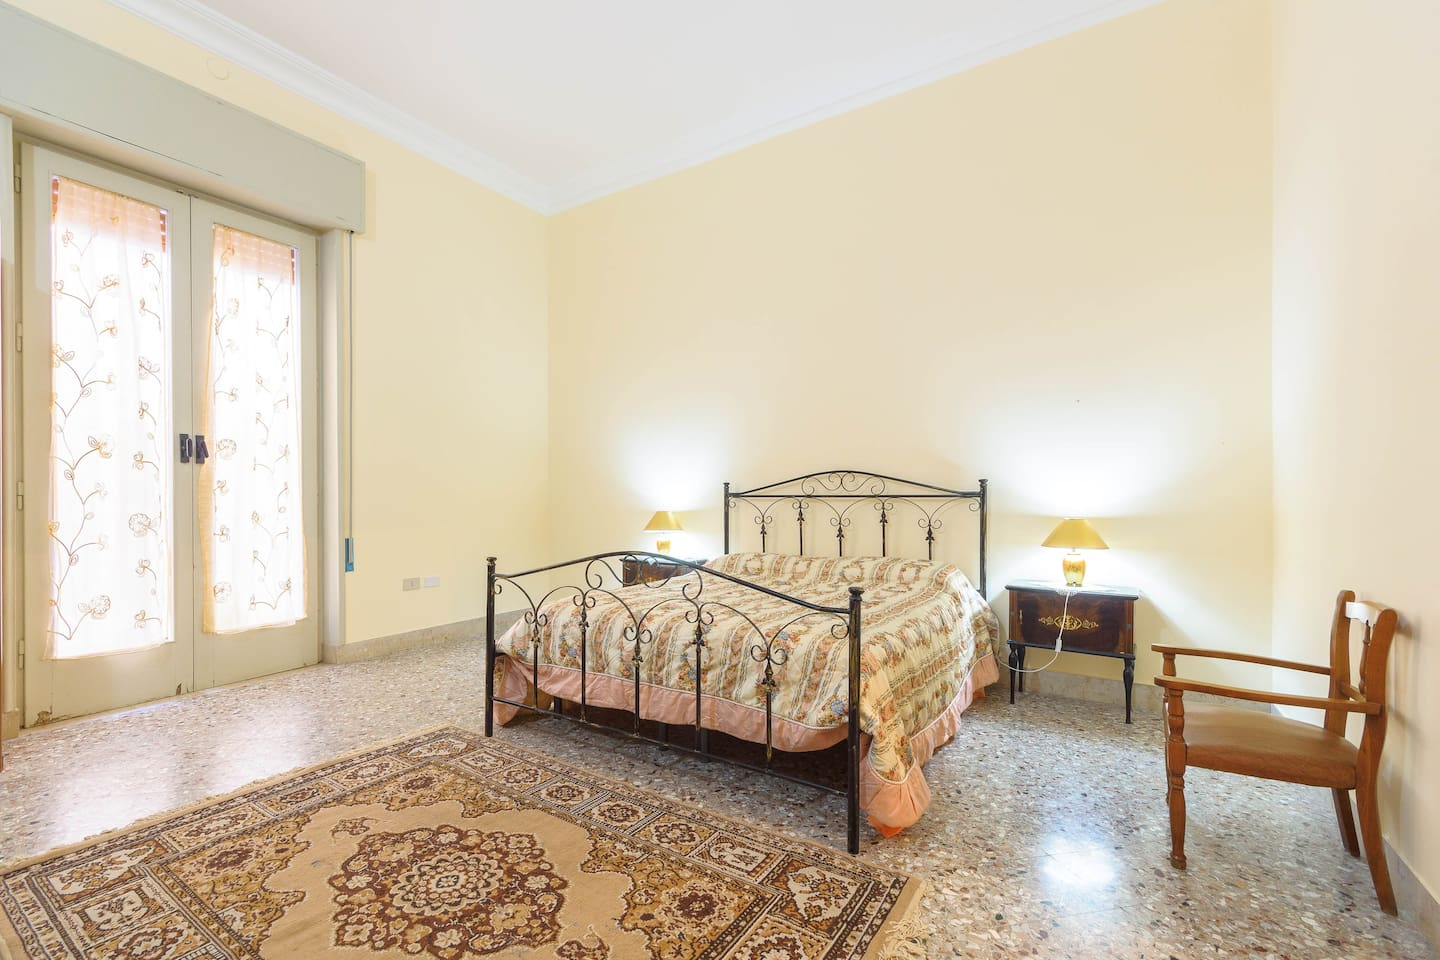 CASA DELLA PACE HOLYDAY HOUSE